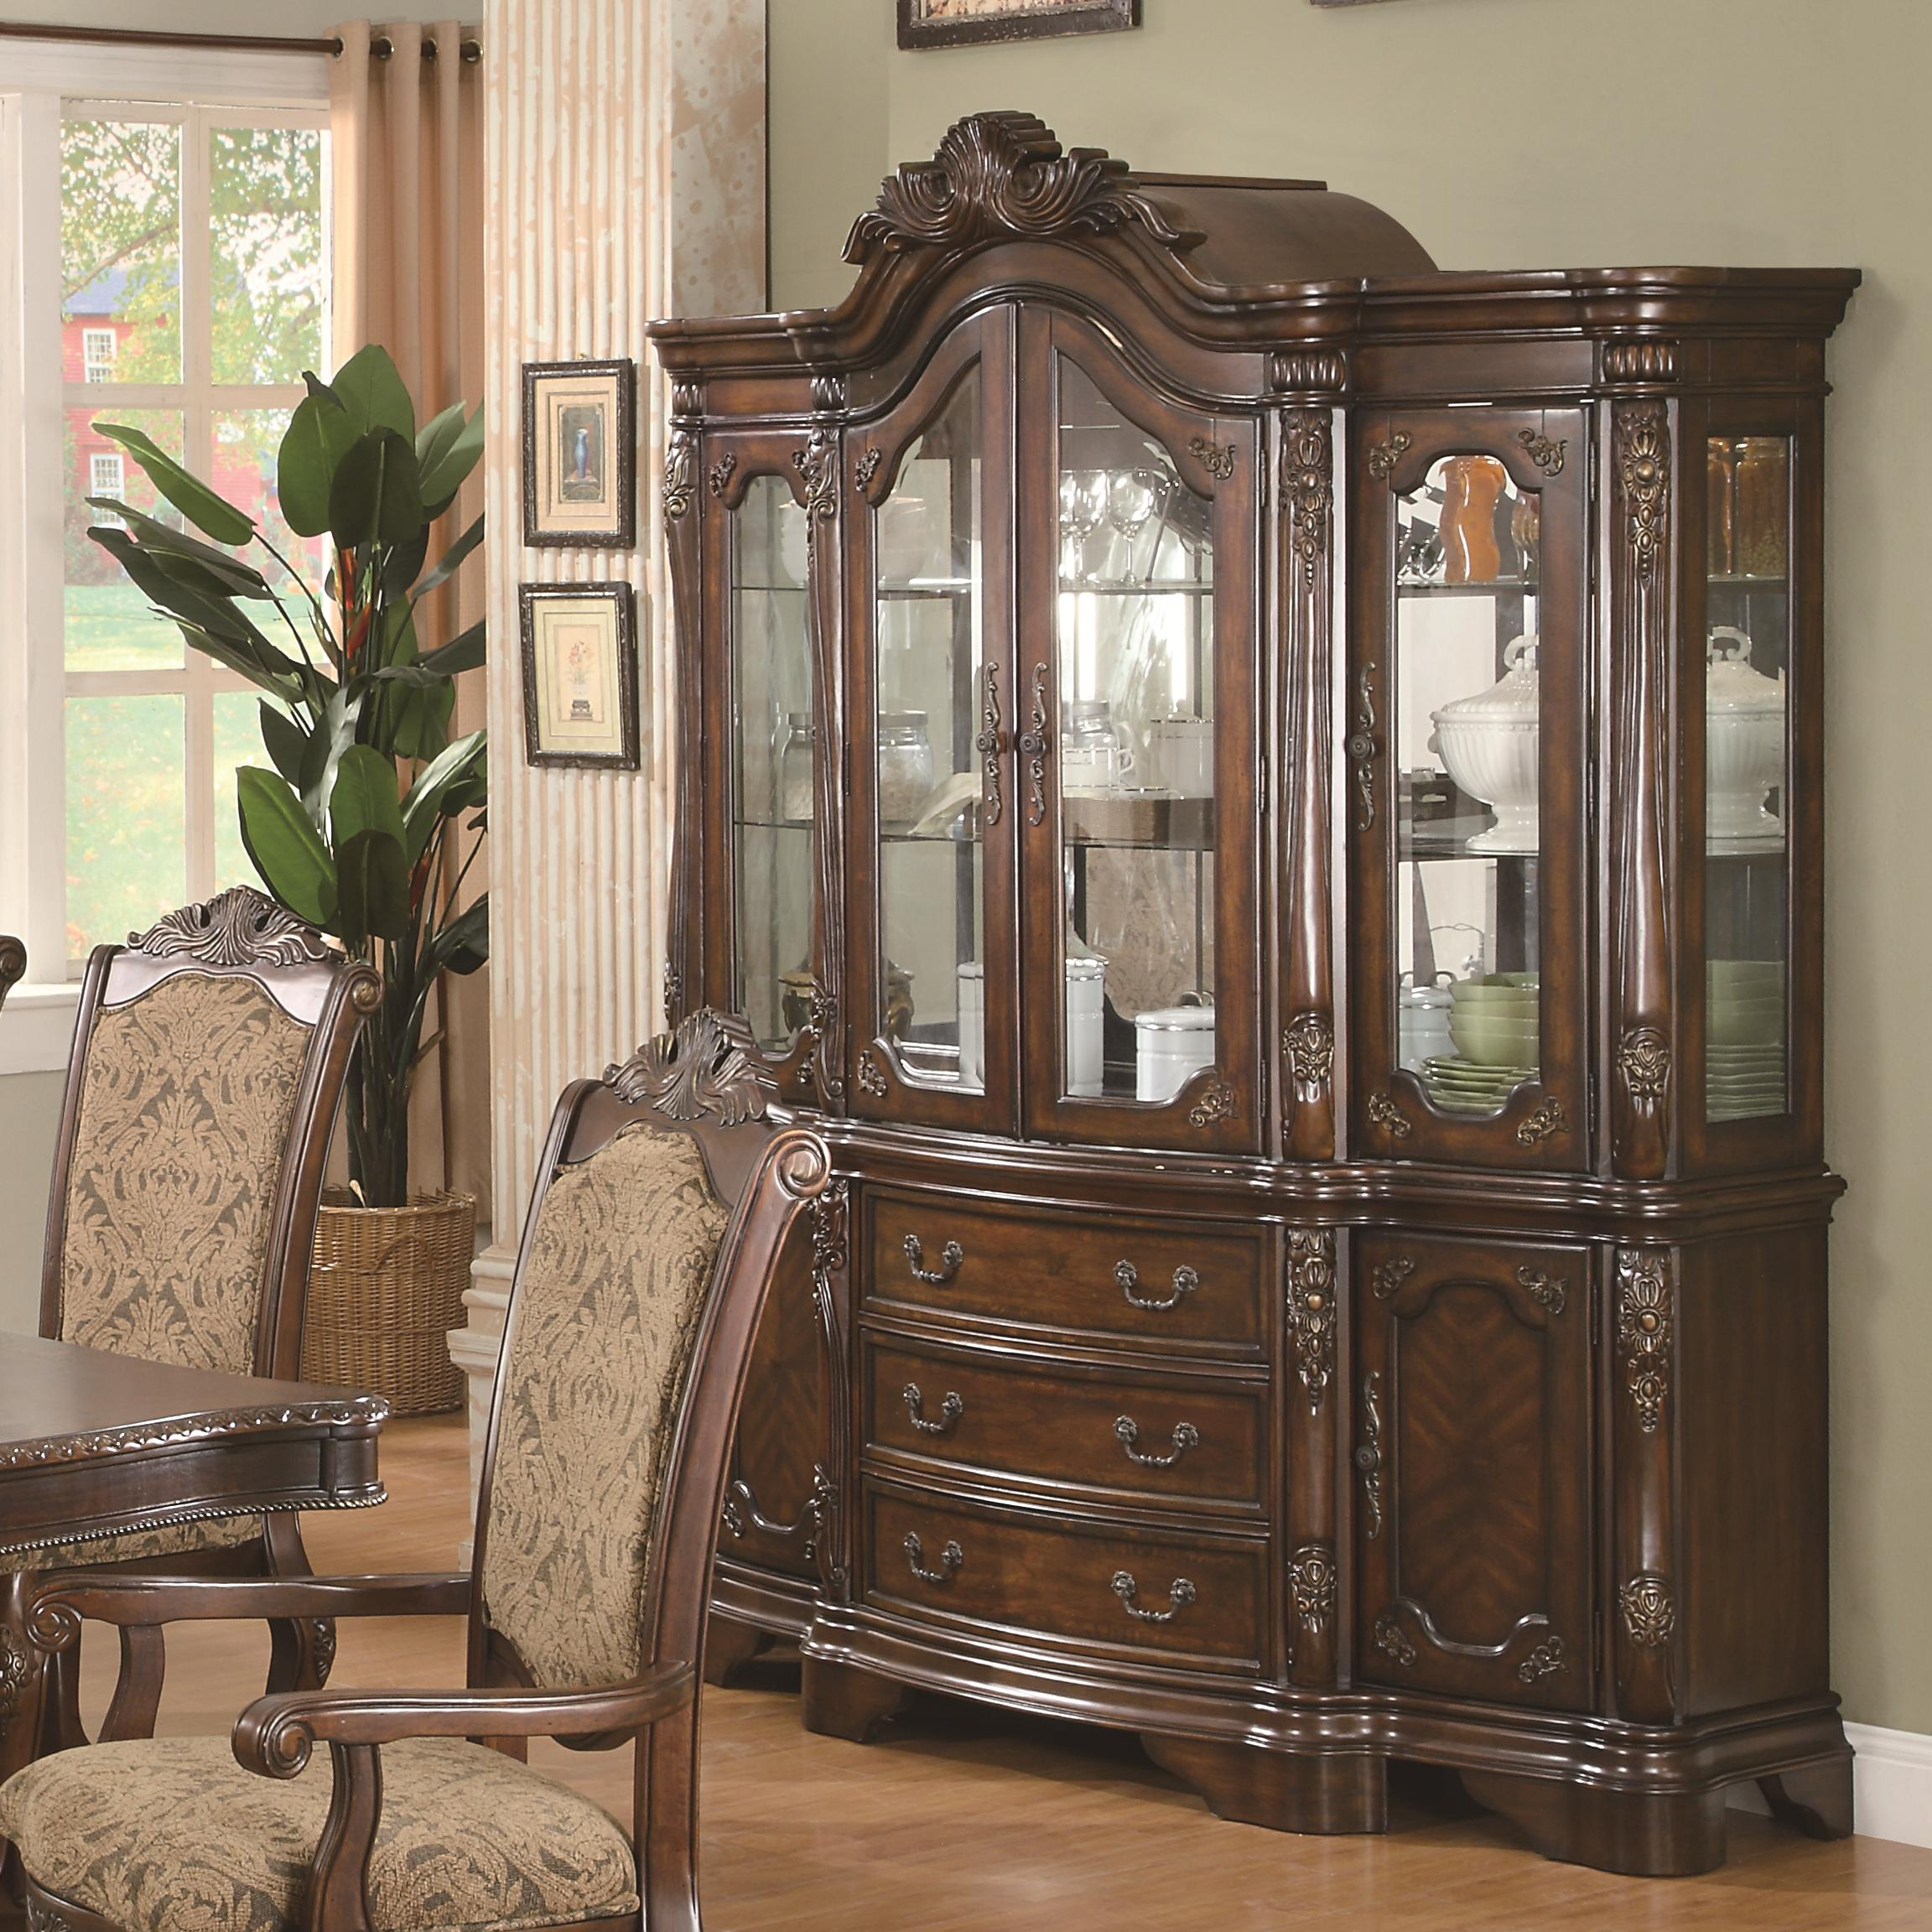 Terrific Dining Room China Hutch Images House Designs Veerle Us